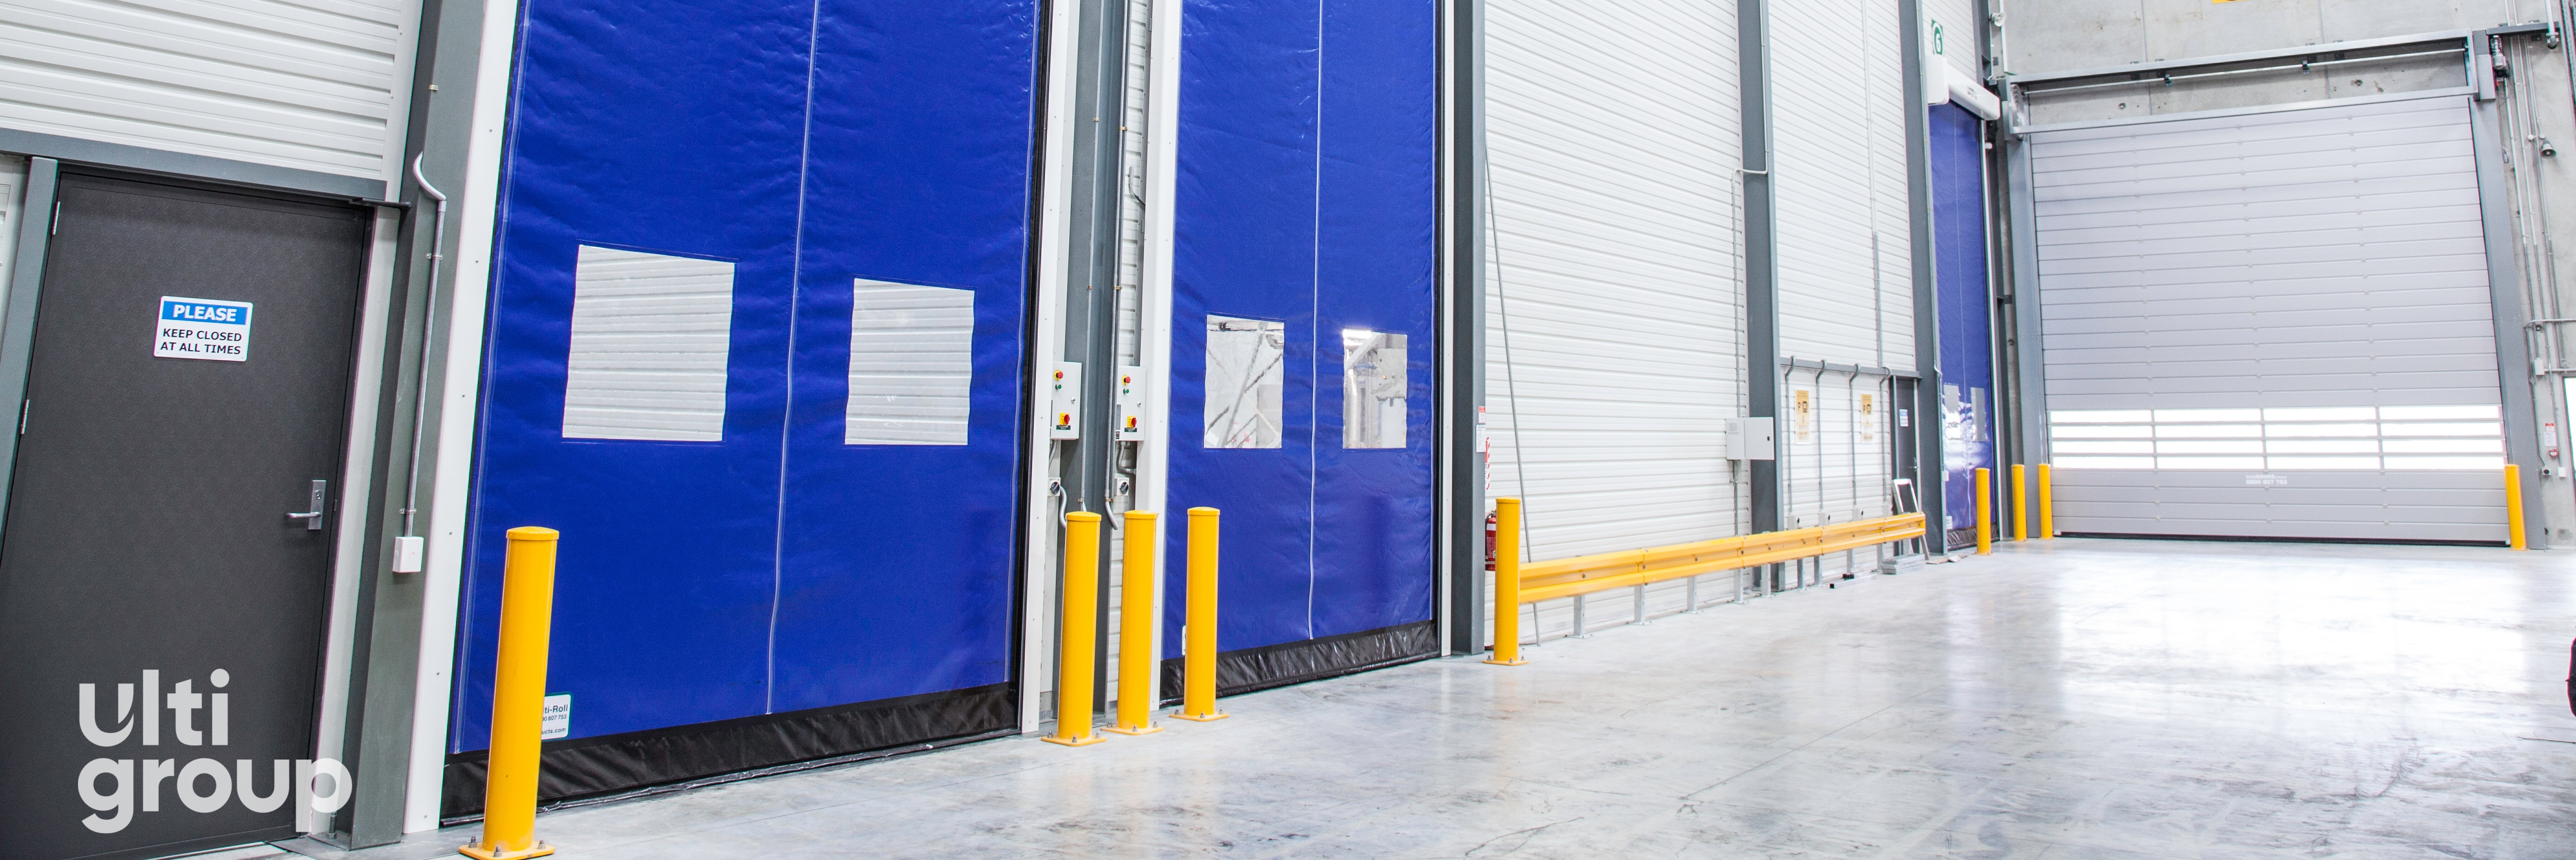 1311-Ulti Roll Rapid Acting Door with Vision Panels and Bollard Protection - Image Holdings (10)